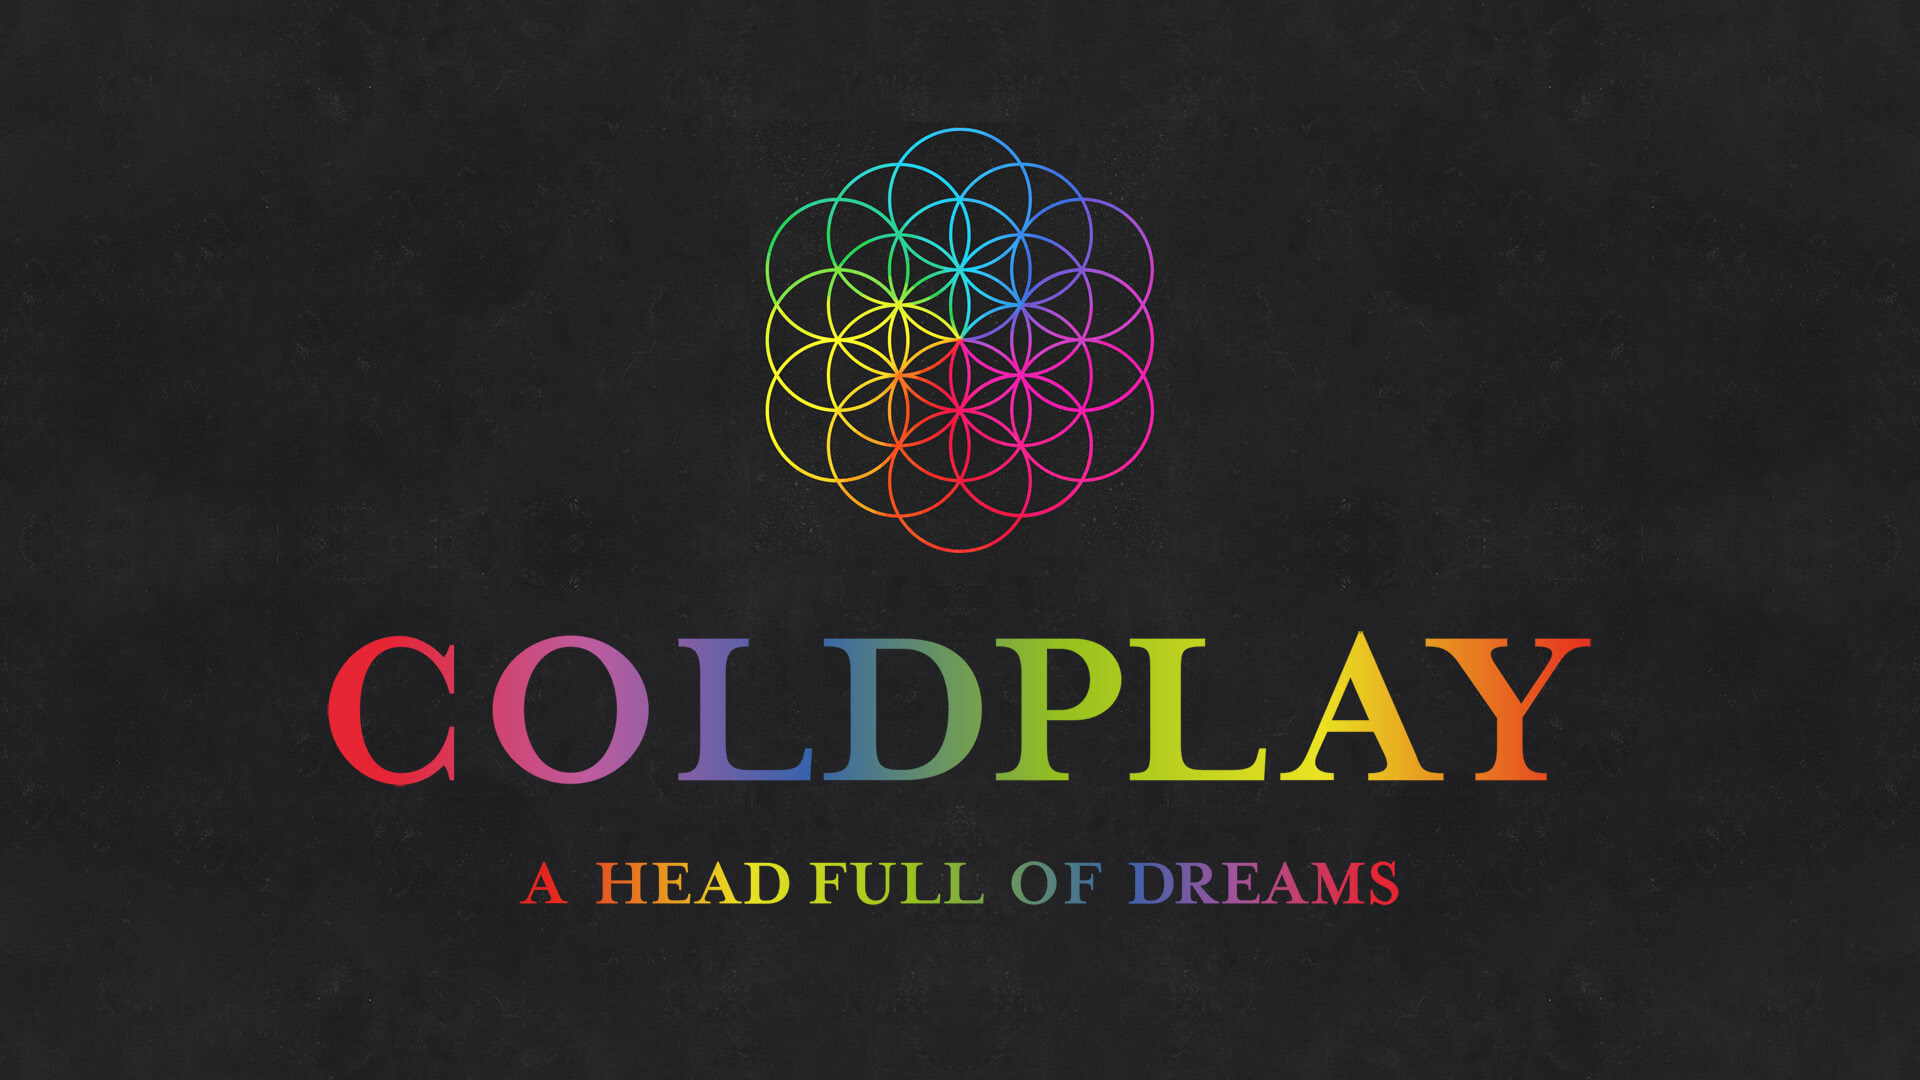 http://podrozemuzyczne.blogspot.com/2016/01/coldplay-head-full-of-dreams.html